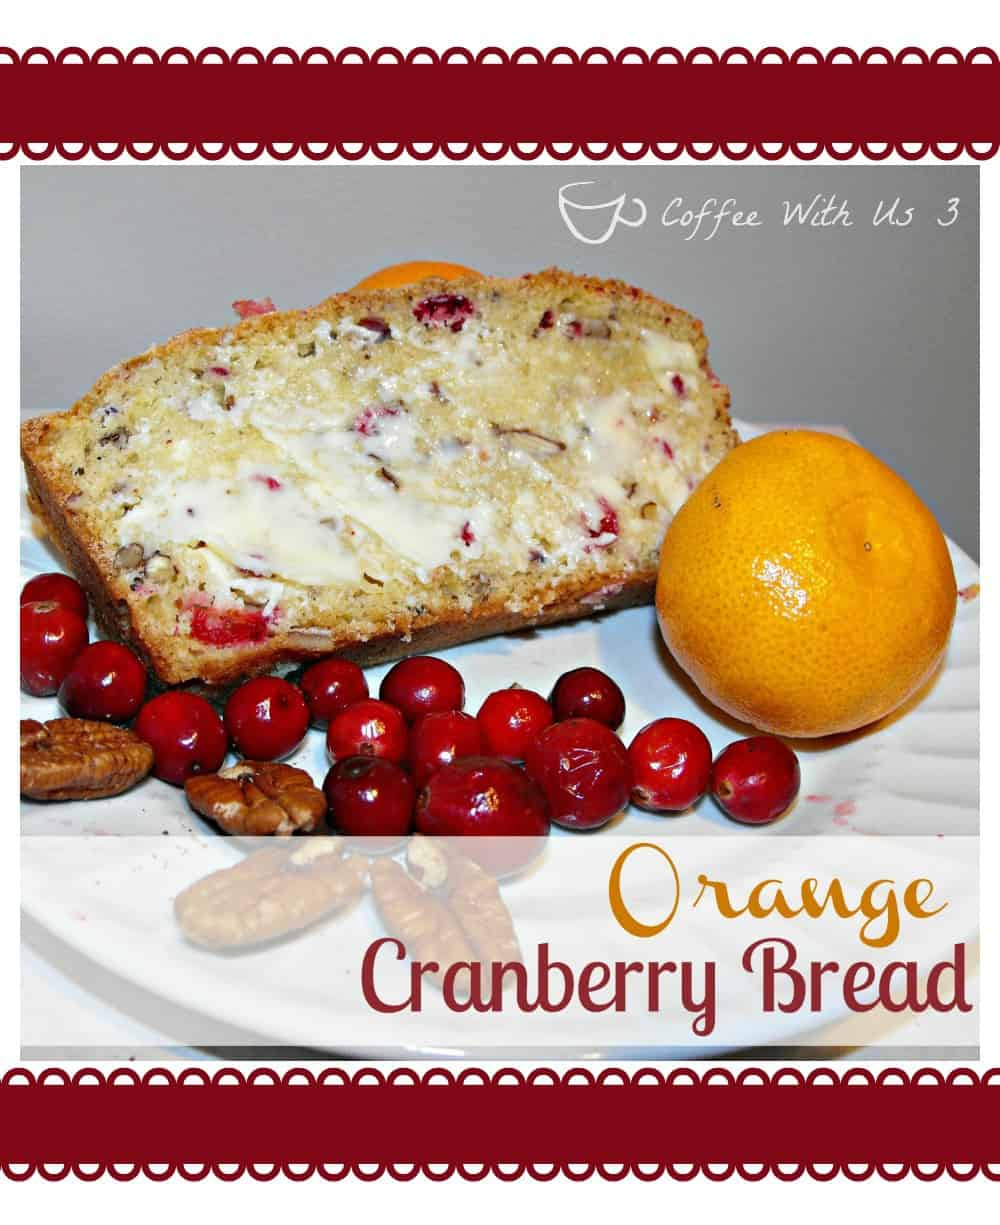 Orange Cranberry Bread - Coffee With Us 3